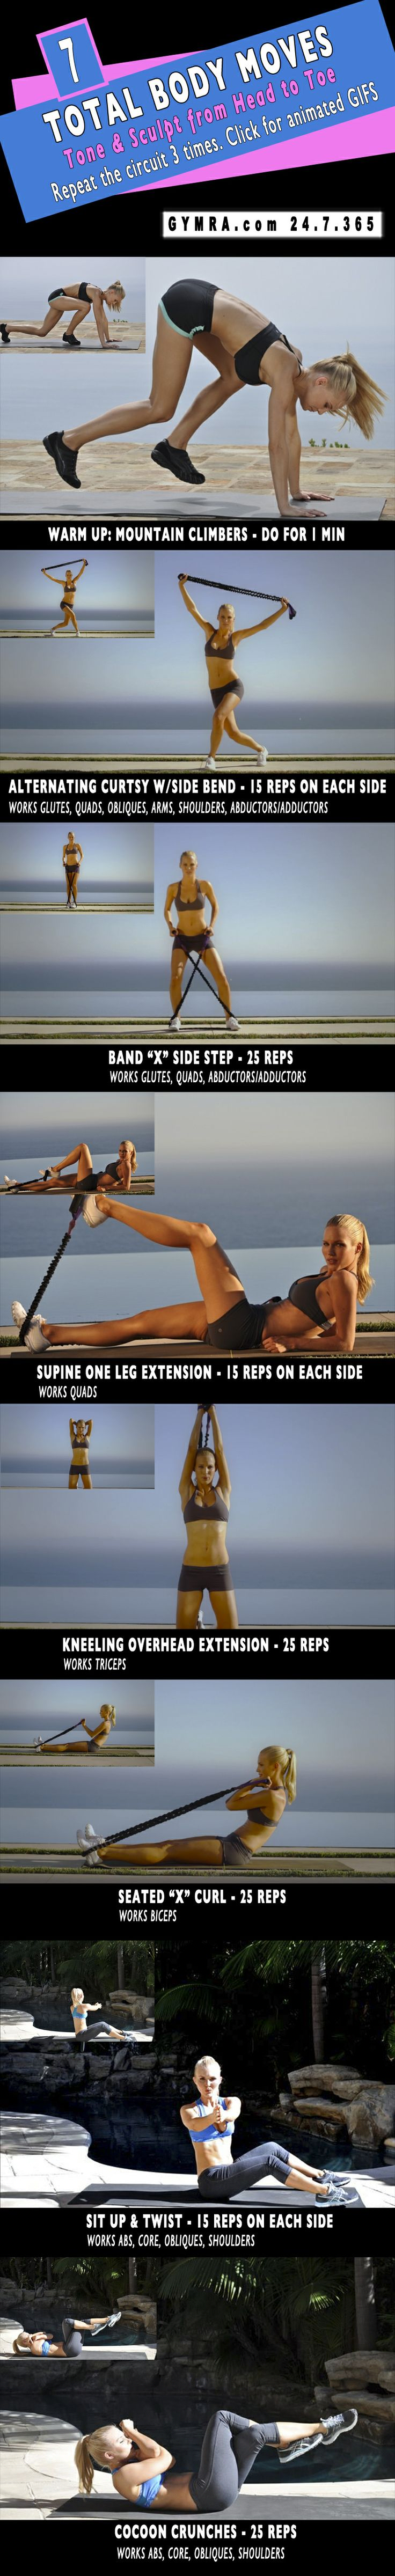 Full body workout using resistance band